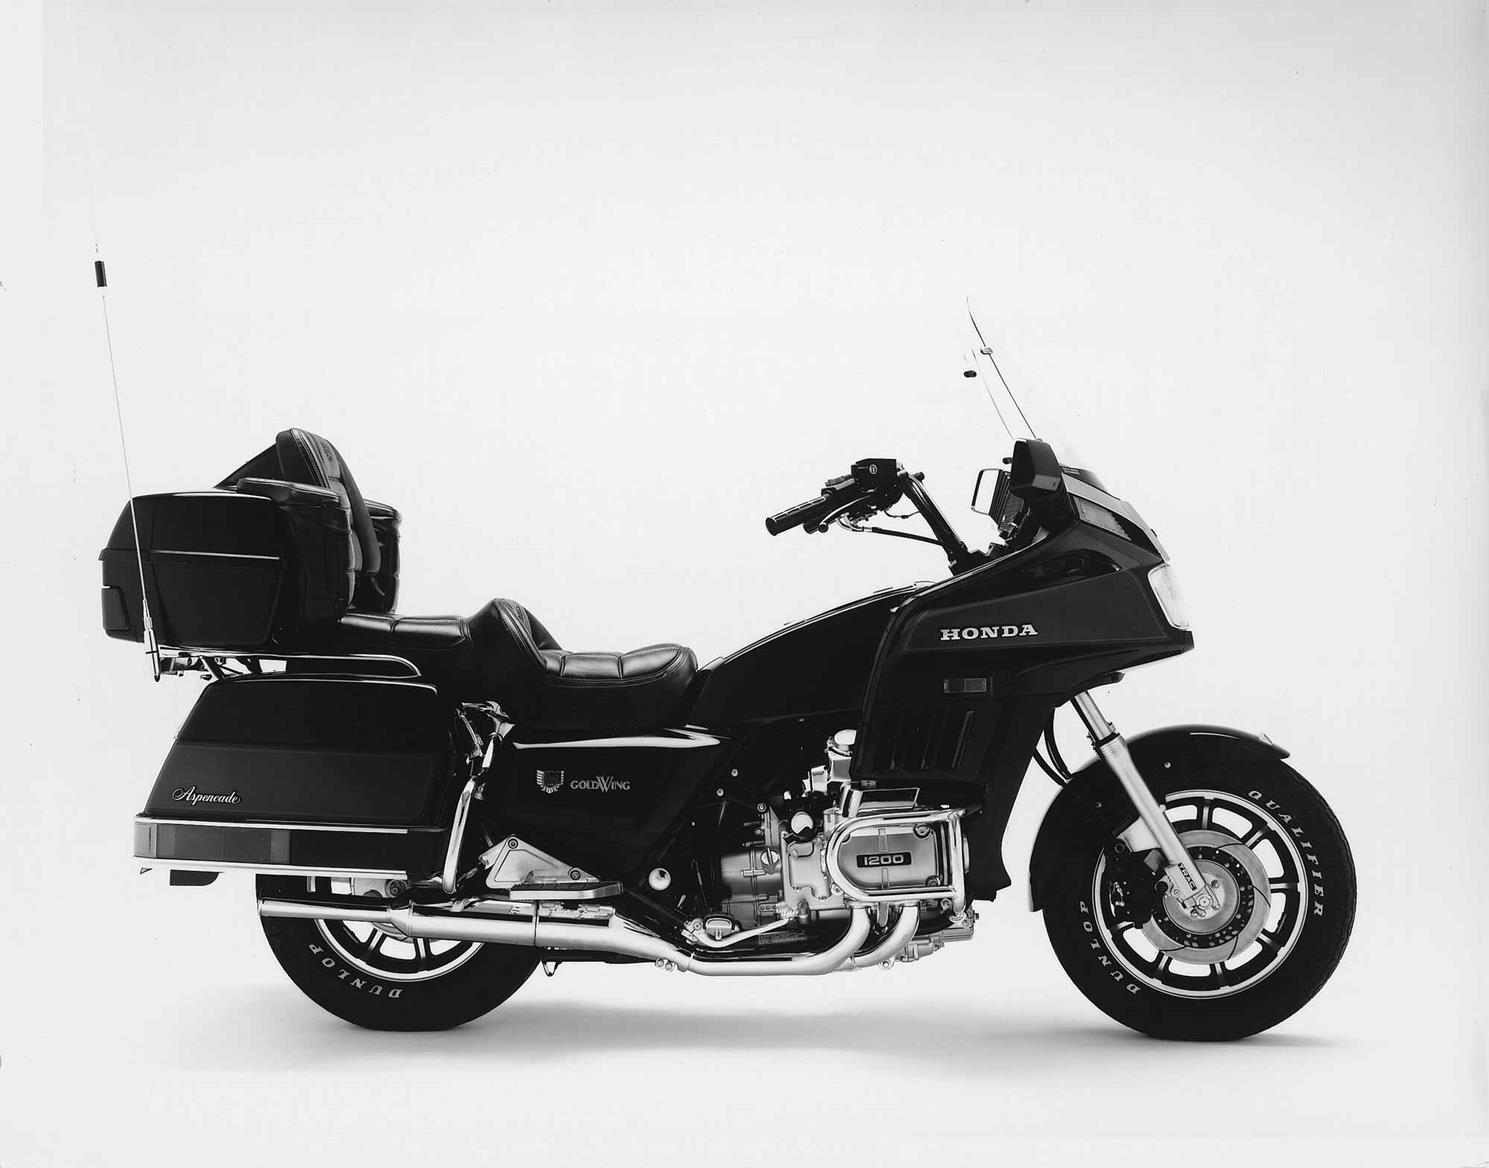 The GL1200 was introduced one year earlier in 1984